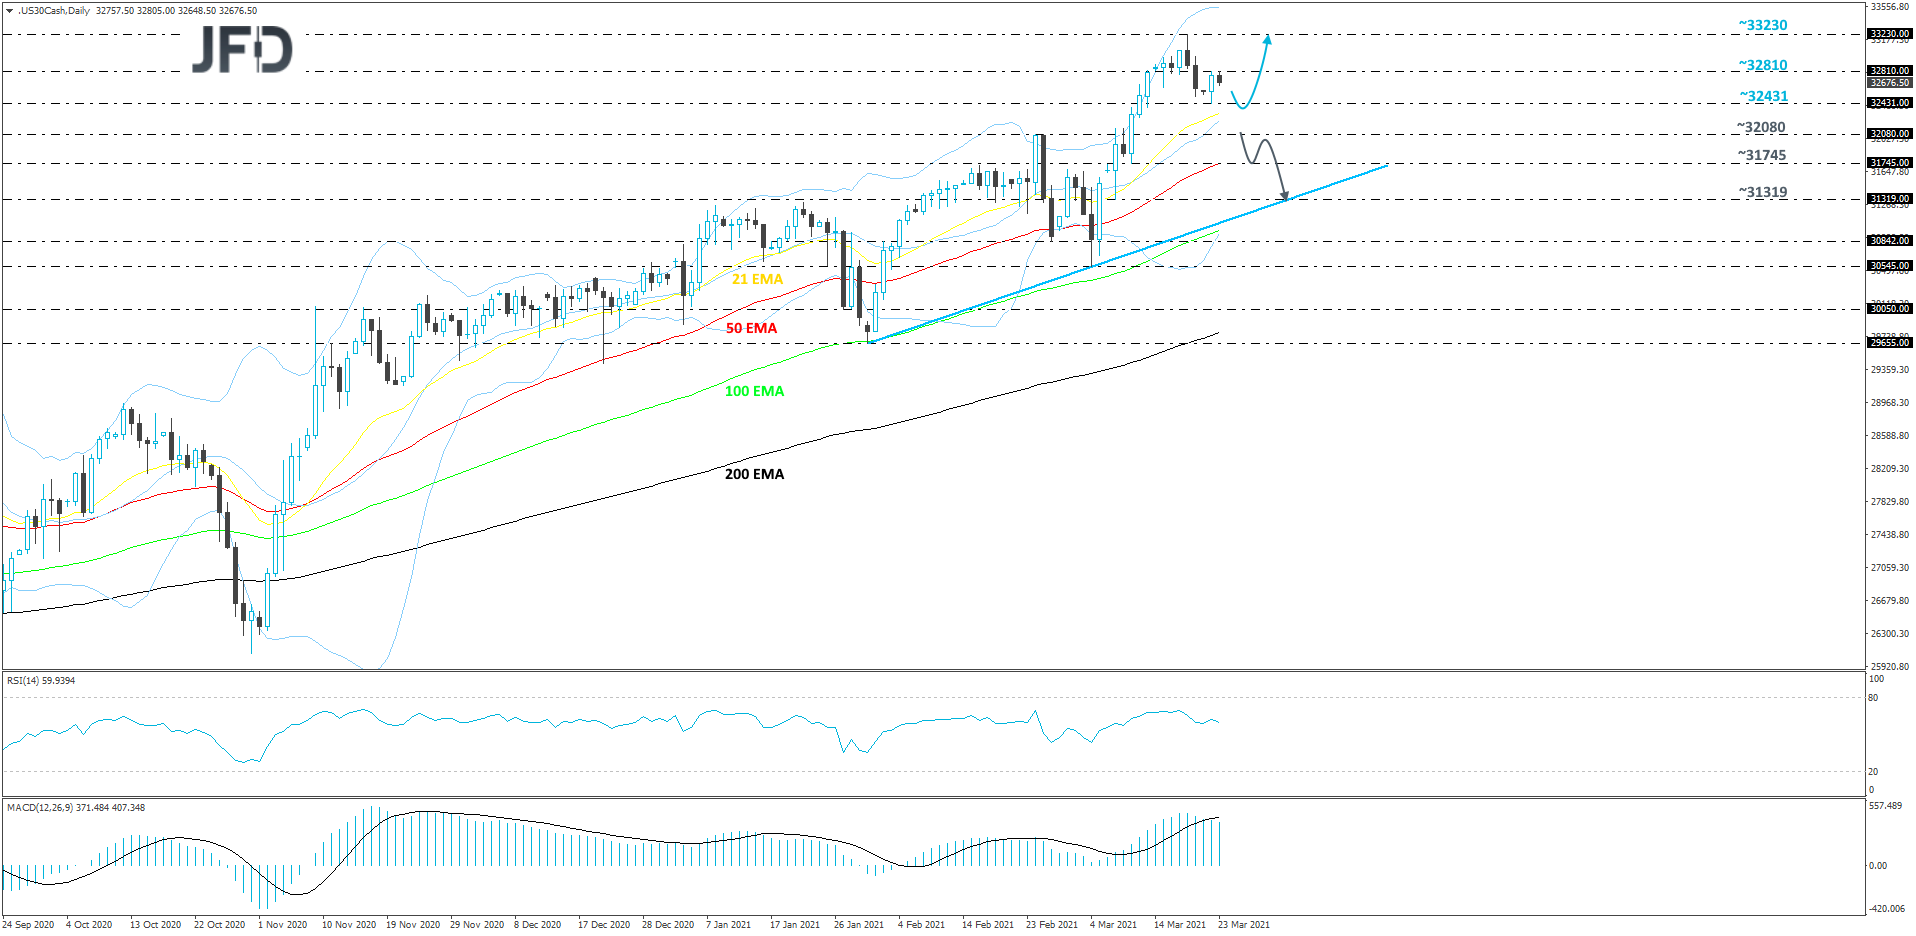 Dow Jones Industrial Average daily chart technical analysis